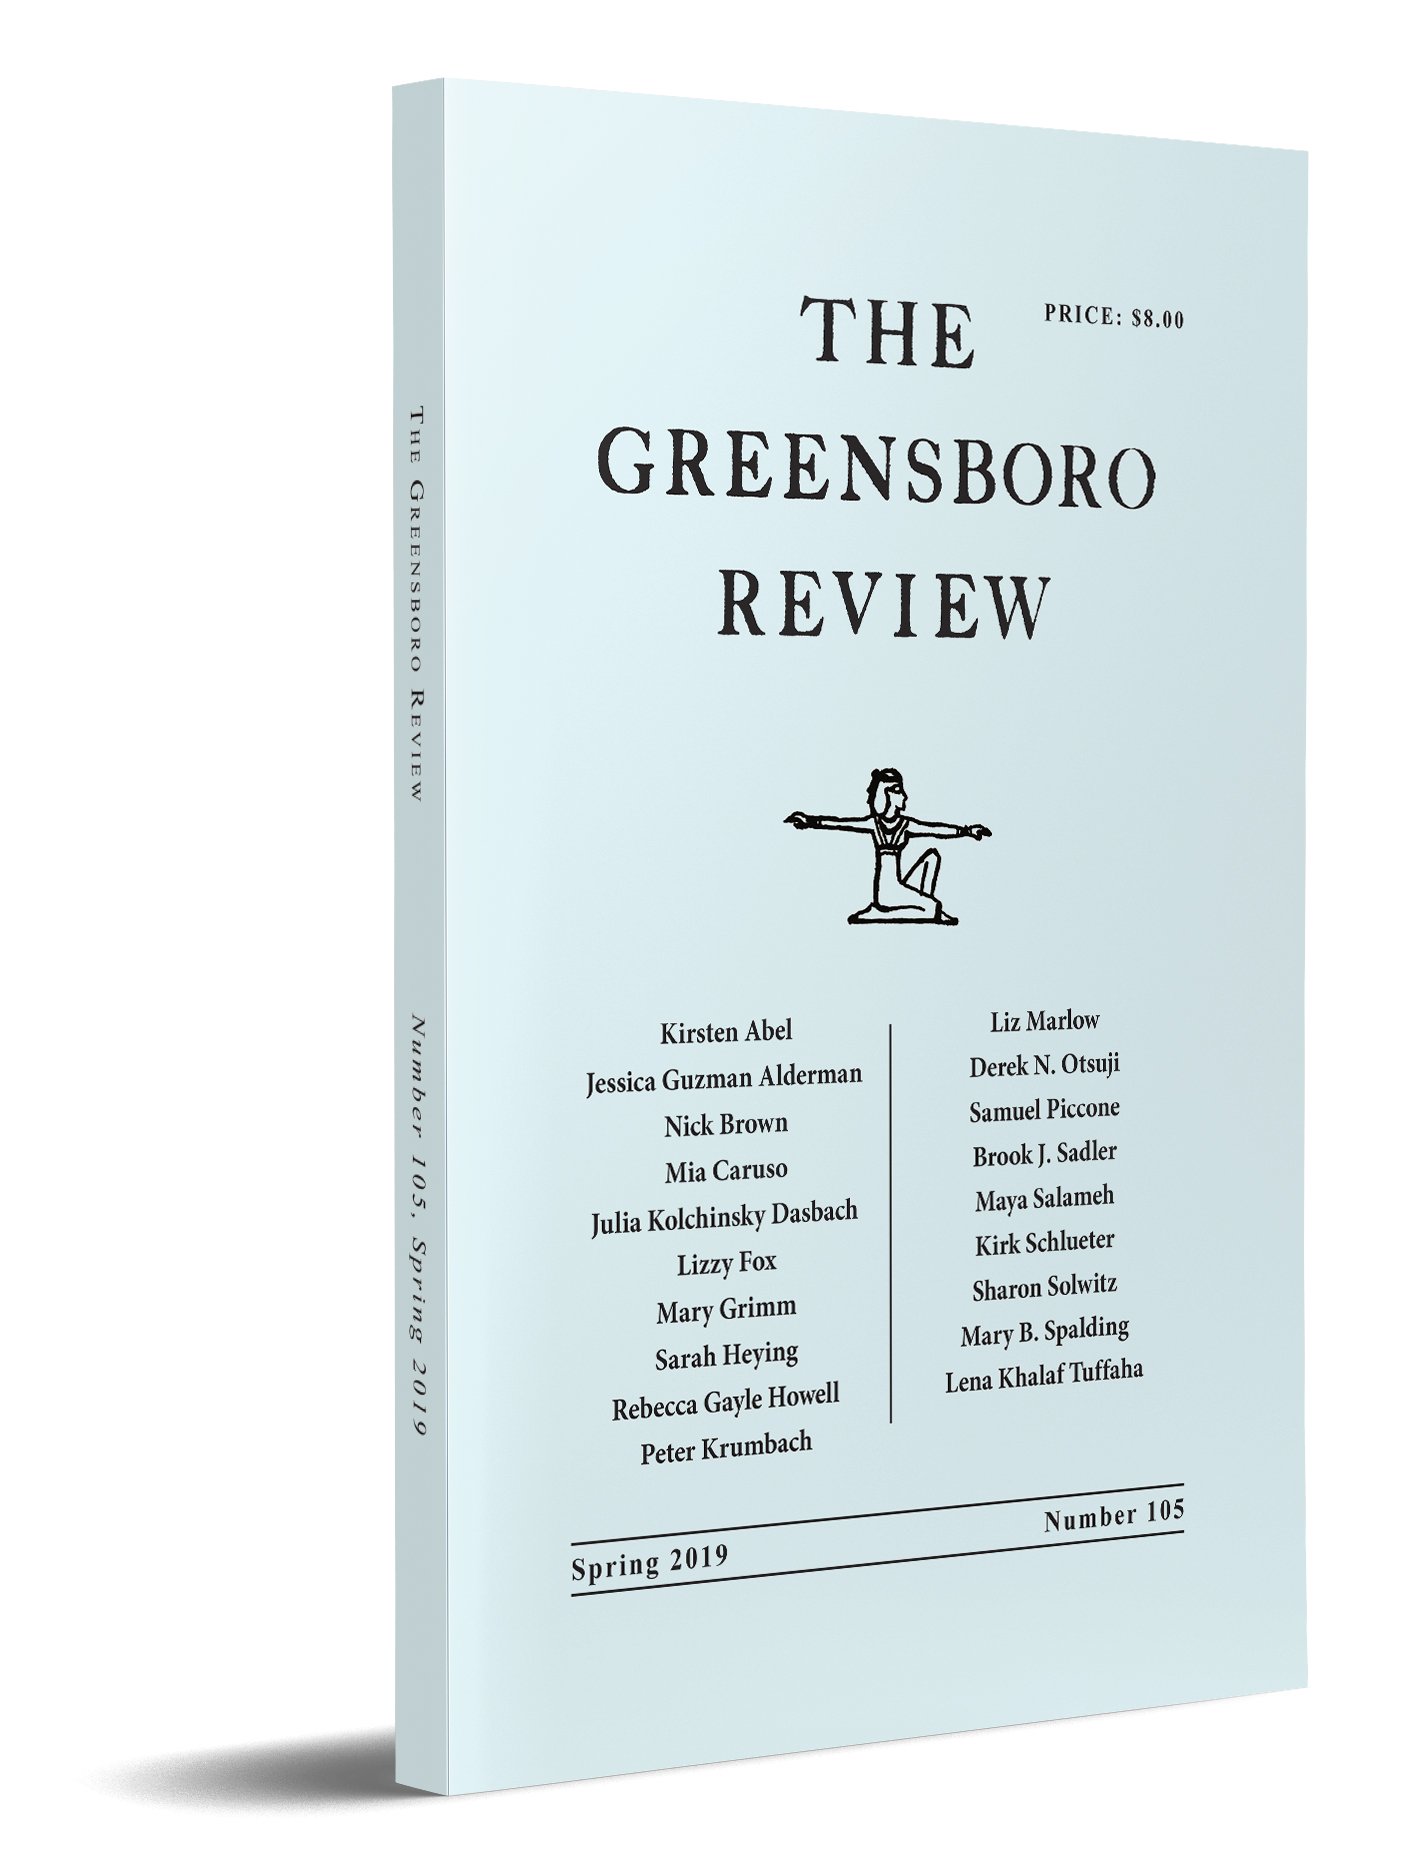 The Greensboro Review, Issue 105, Spring 2019